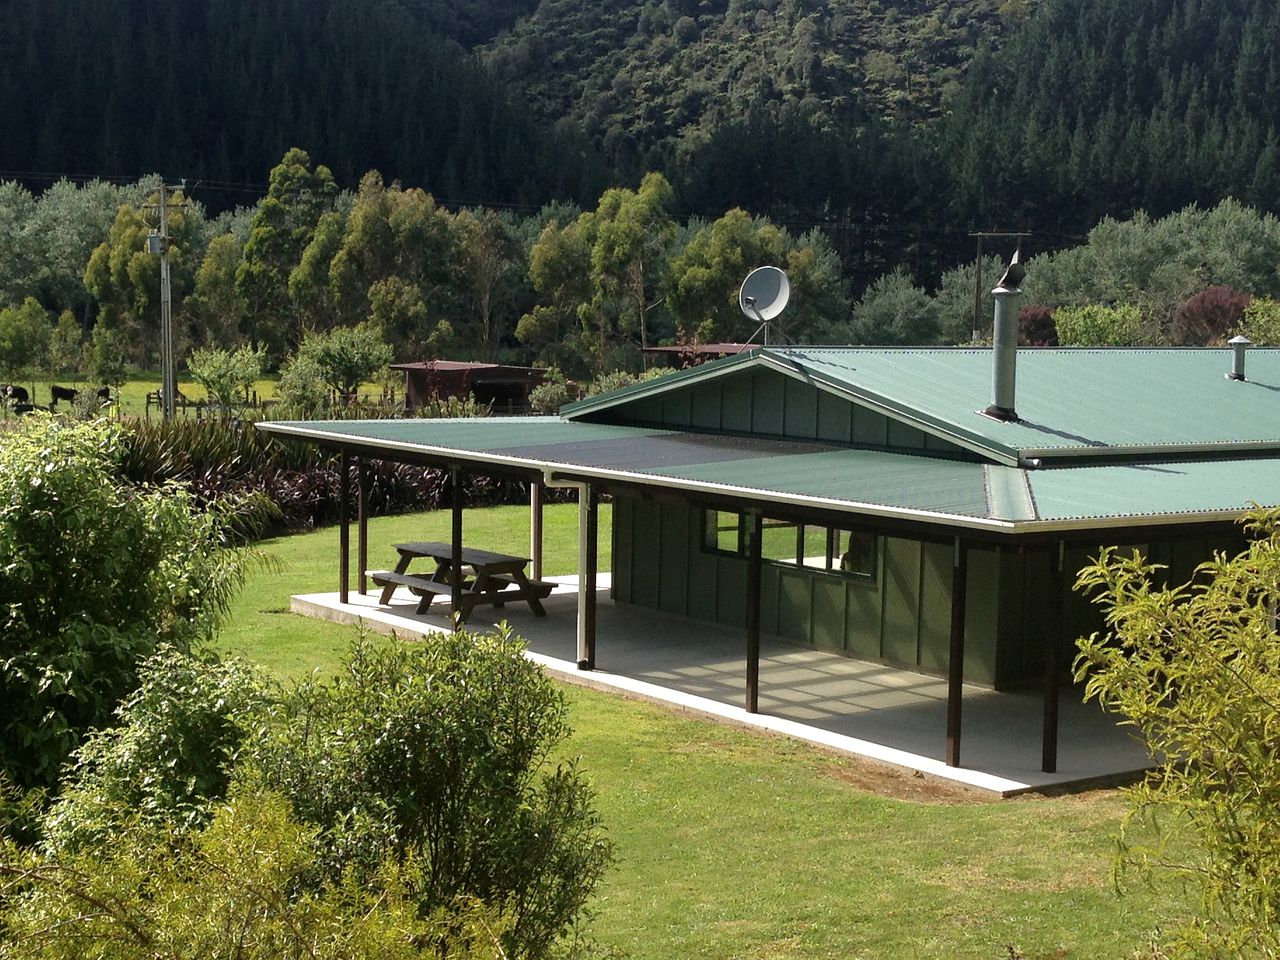 Cabins (Opotiki, North Island, New Zealand)